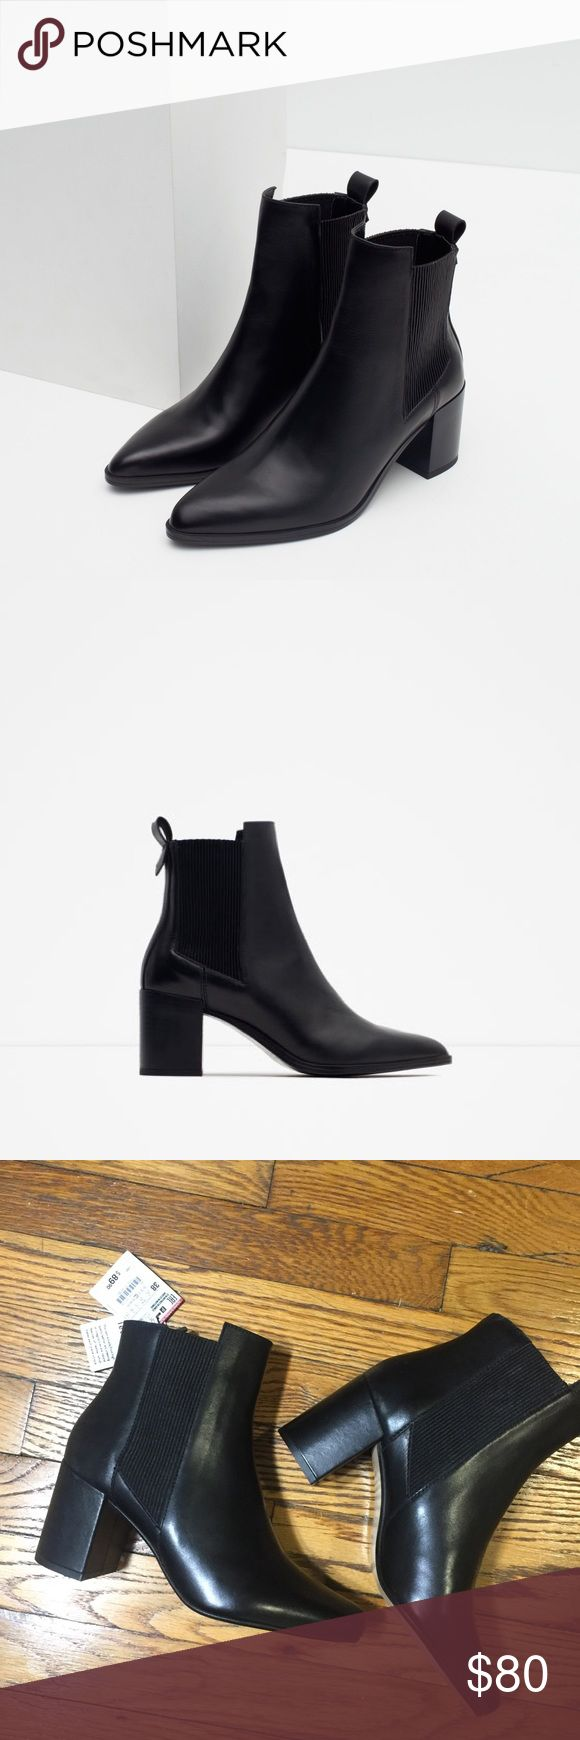 NWT Zara Woman Black Leather Heeled Boots Adorable, real leather black Chelsea ankle boot heels. Still with tags! Never wore them because I already have ones just like them! Size 38 in Zara. Purchased in NY. Super cute. Make an offer! Zara Shoes Heeled Boots